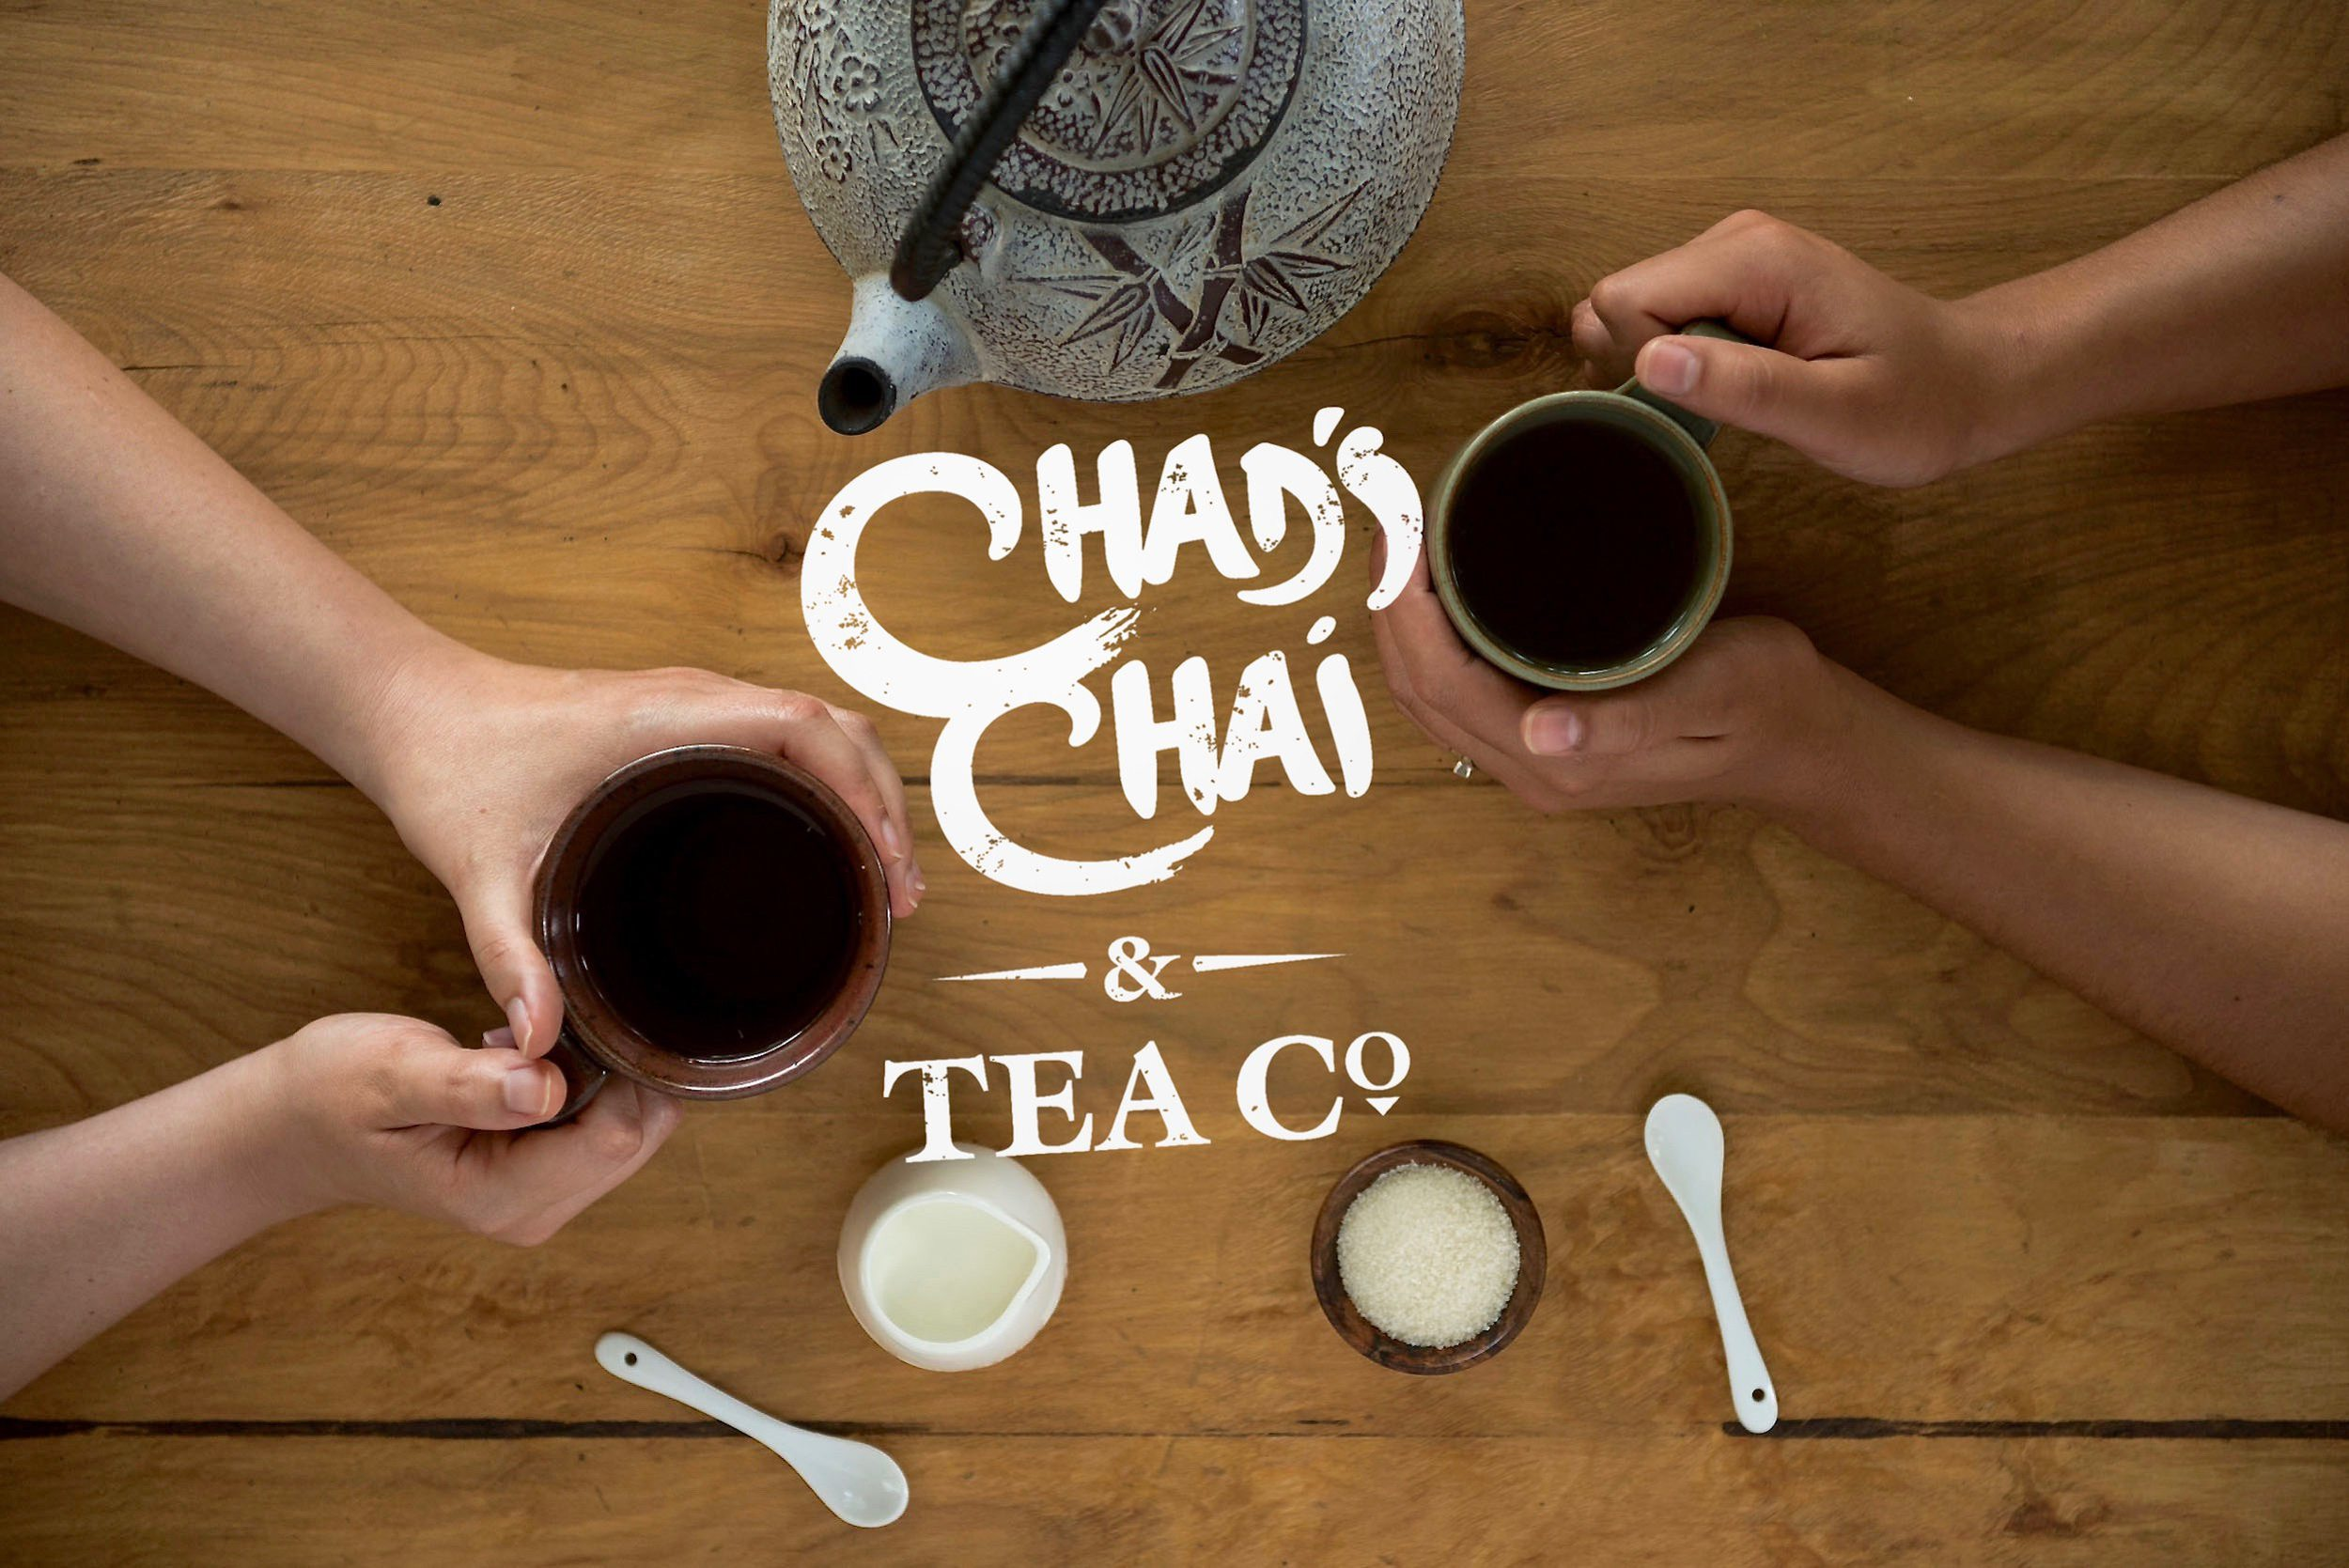 Sharing Tea with Friends